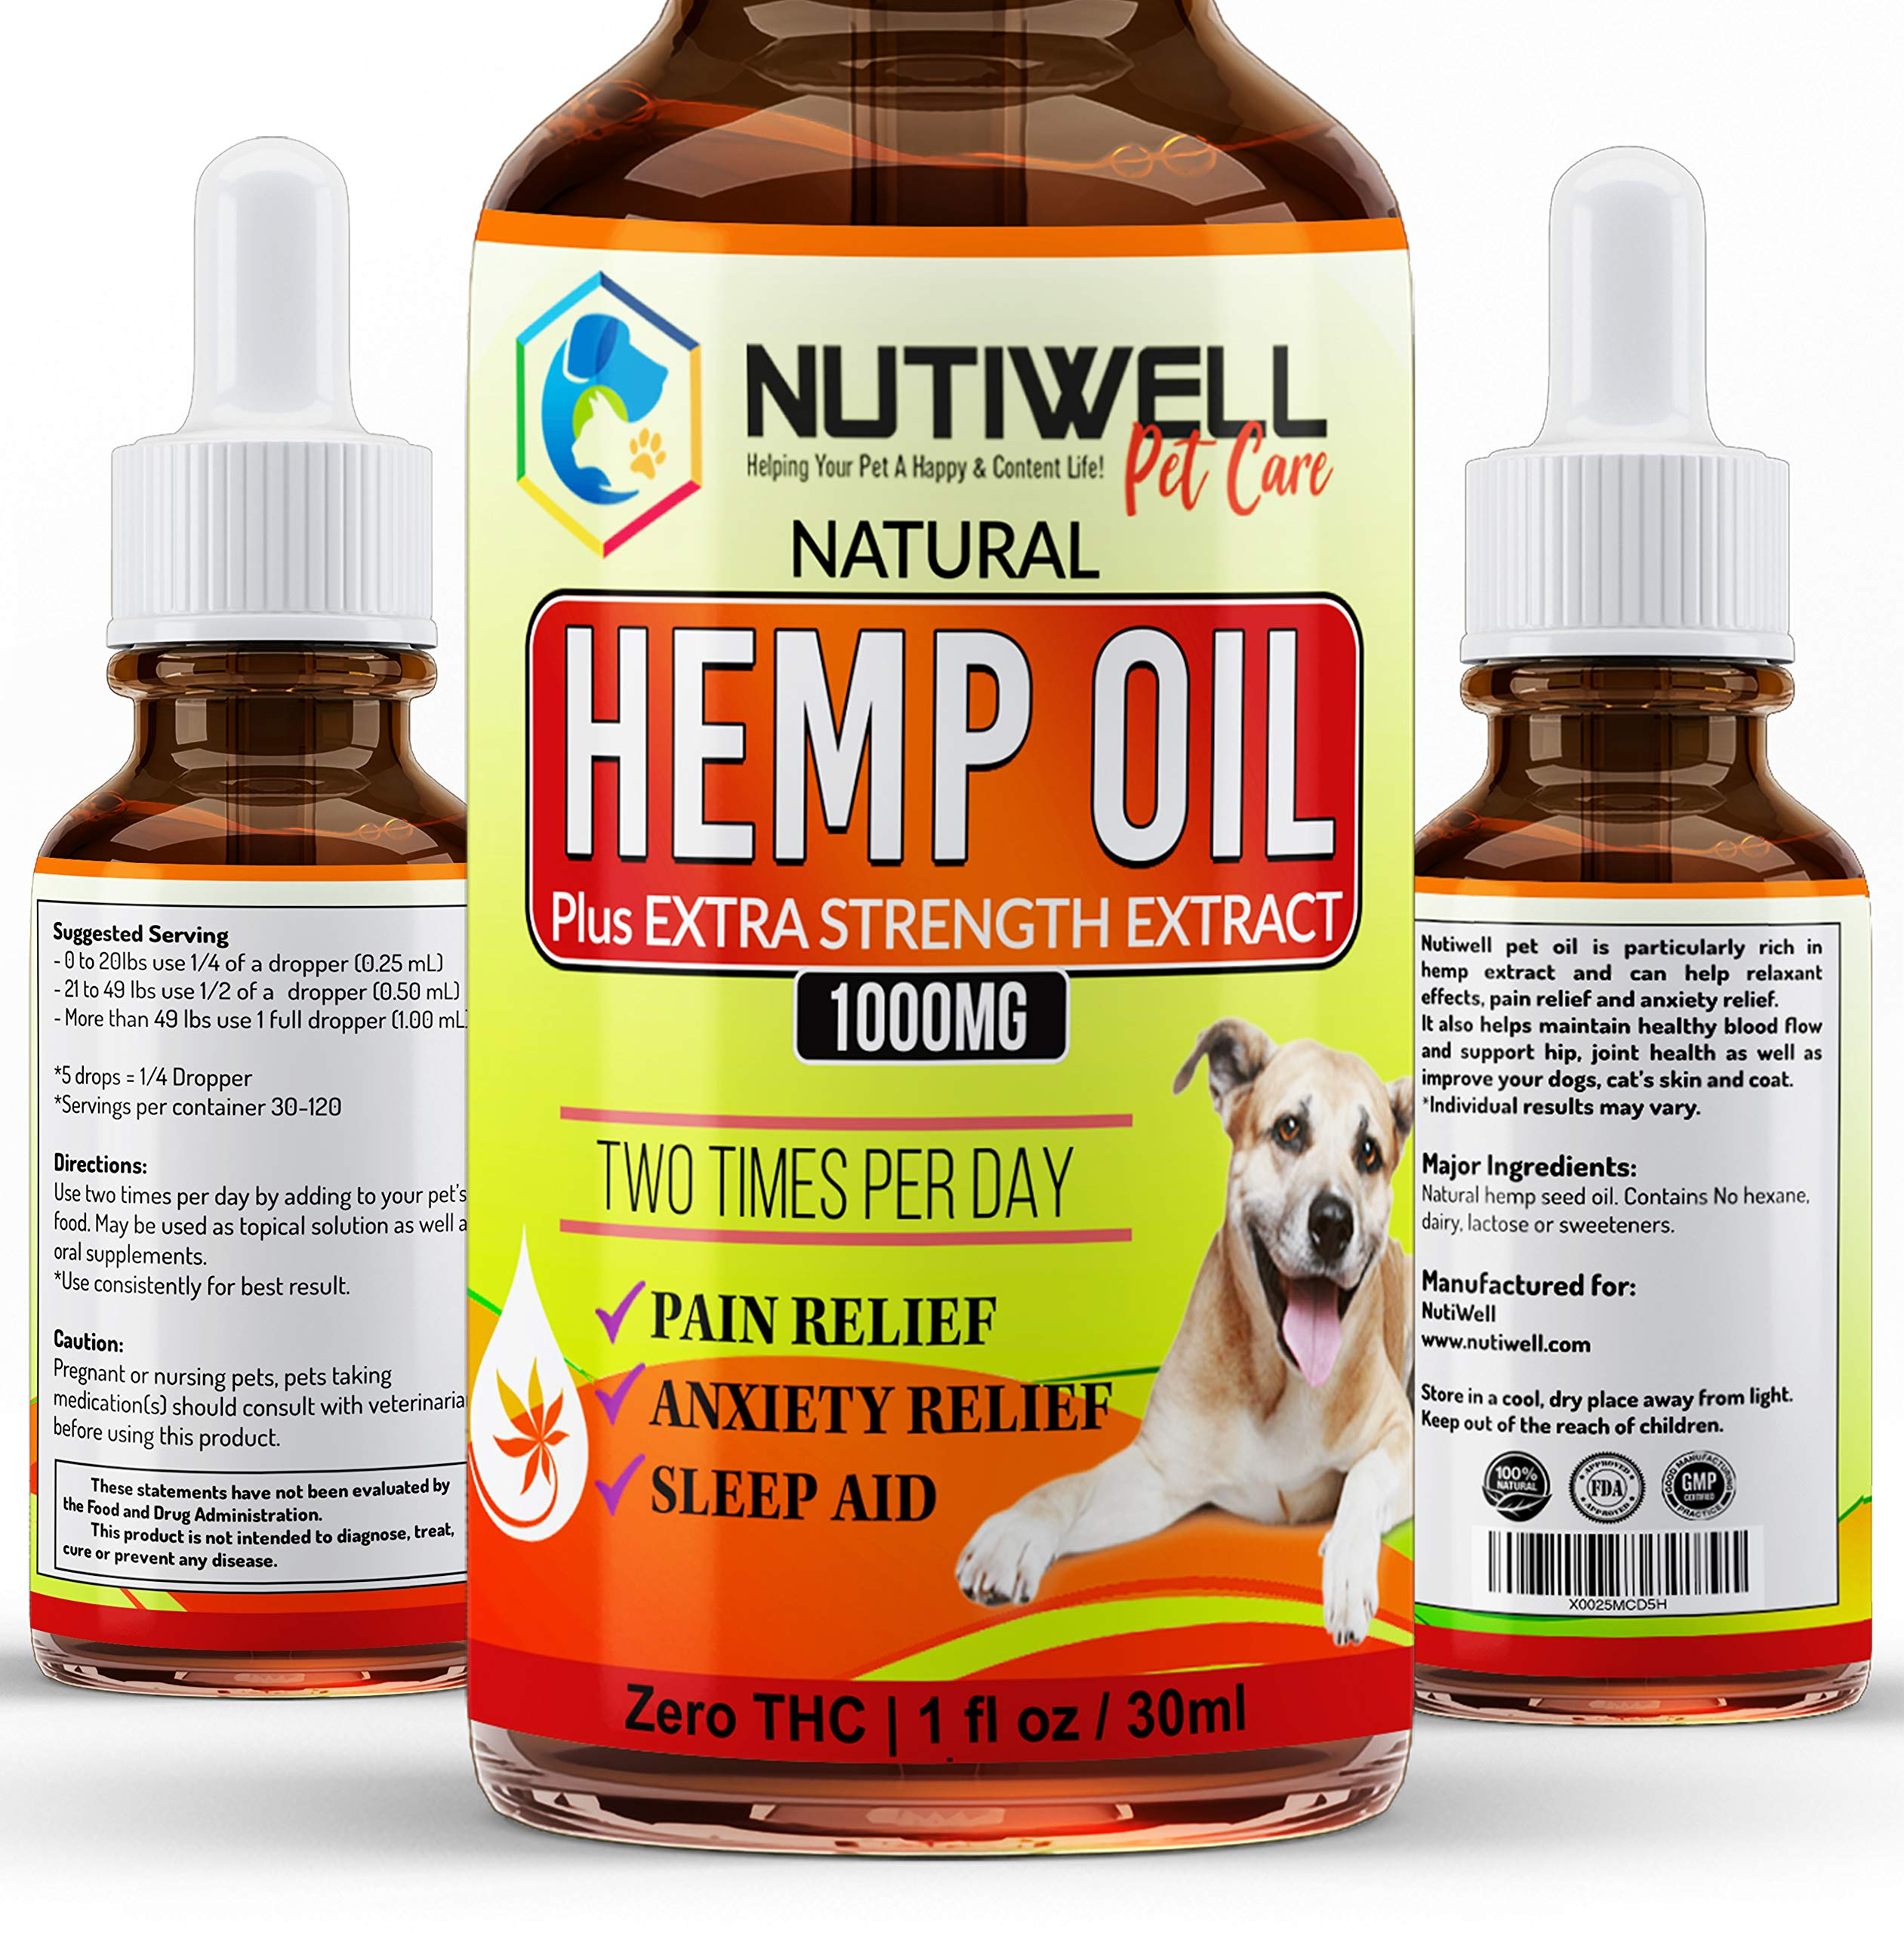 NutiWell Hemp Oil Dogs Cats - 1000 Mg Real Extract - Relieve Separation Anxiety, Joint Pain, Stress Relief, Arthritis, Chronic Pains, Anti-Inflammatory - Rich in Omega 3, 6, 9 - Natural Calming Drop by NutiWell Hemp Oil